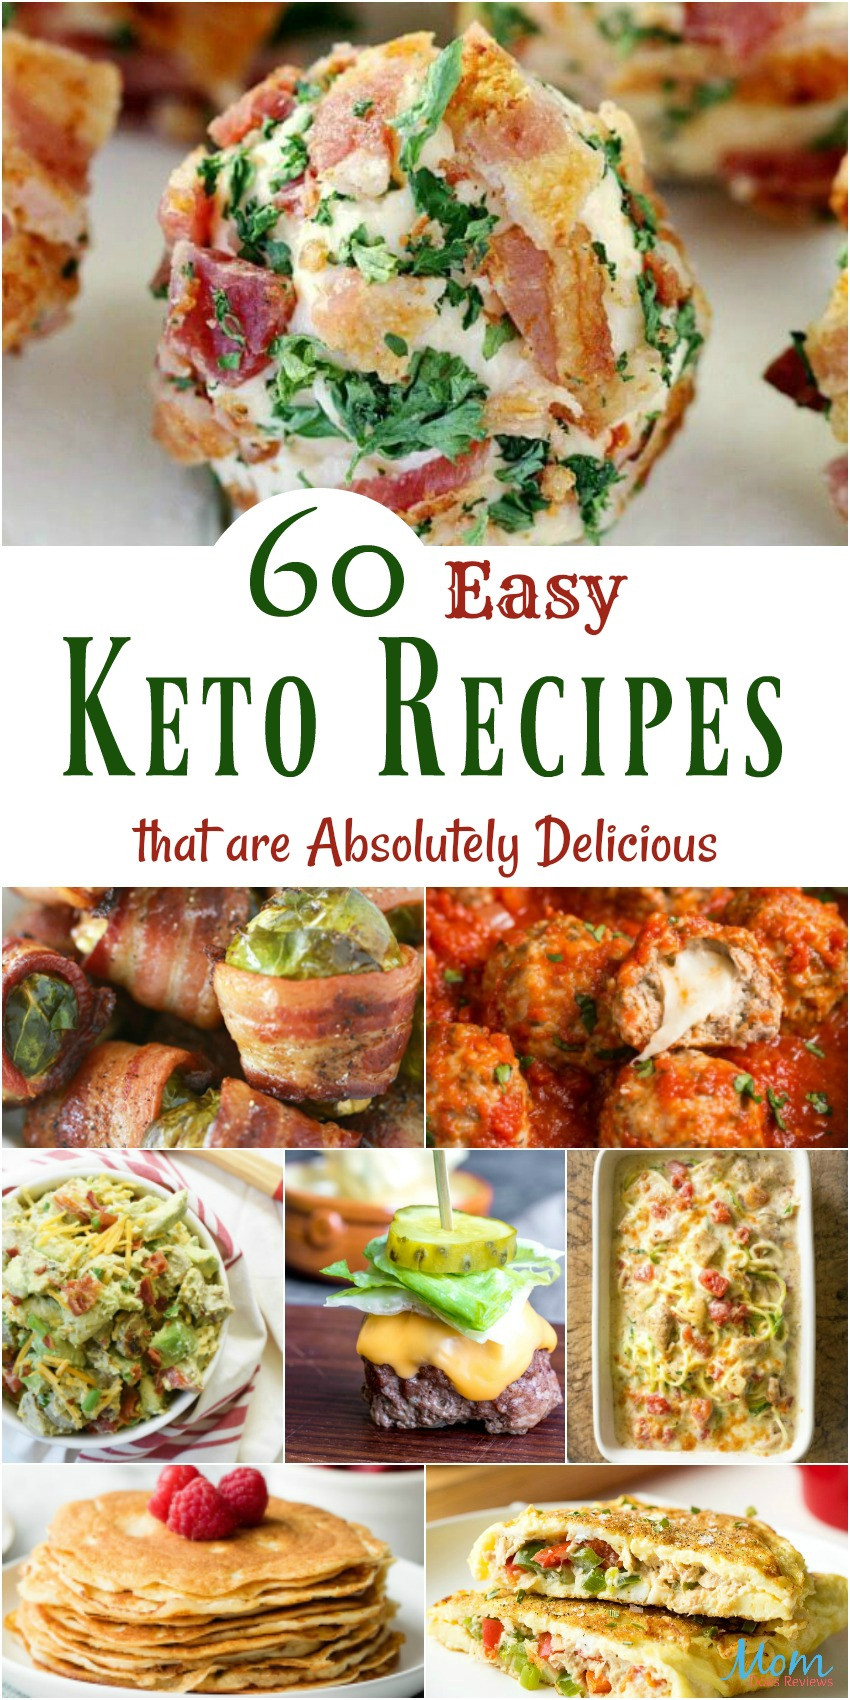 60 Easy Keto Recipes that are Absolutely Delicious #KETO #recipe #ketogenicdiet #diet #recipes #foodie